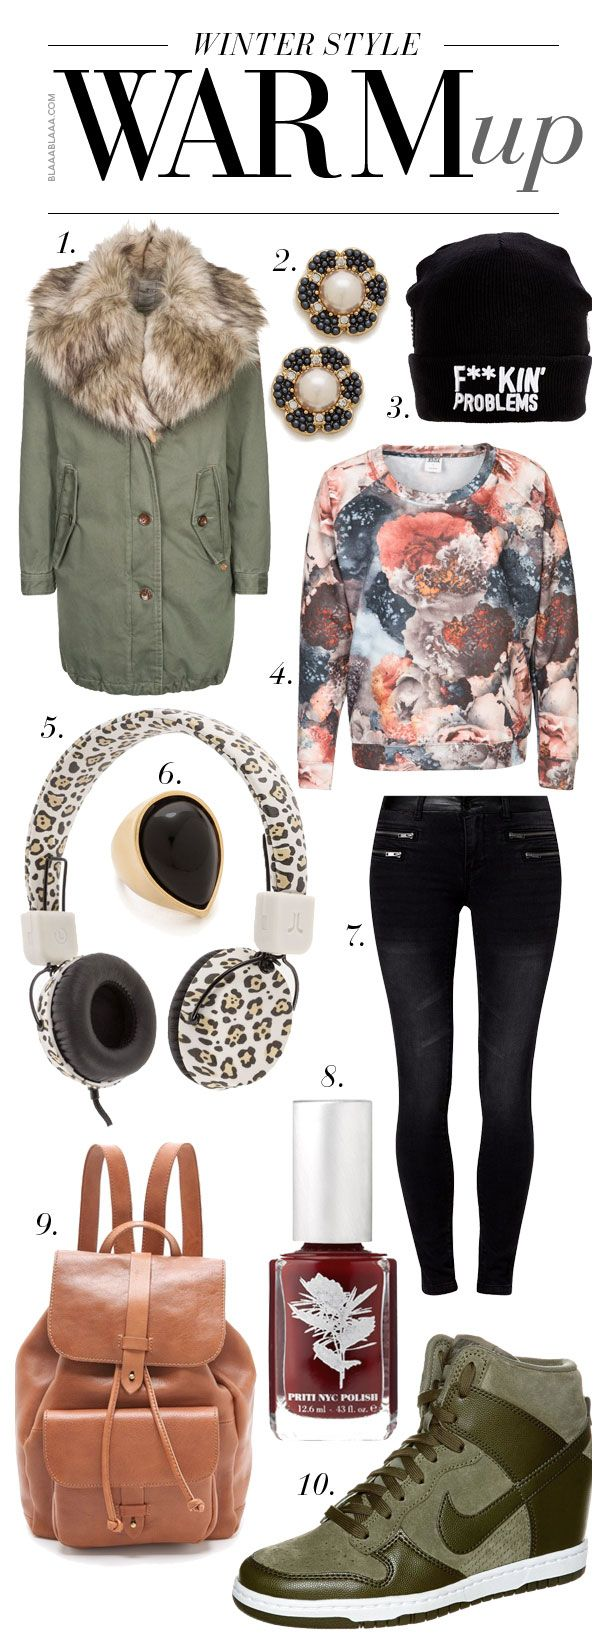 Winter Style – Warm up